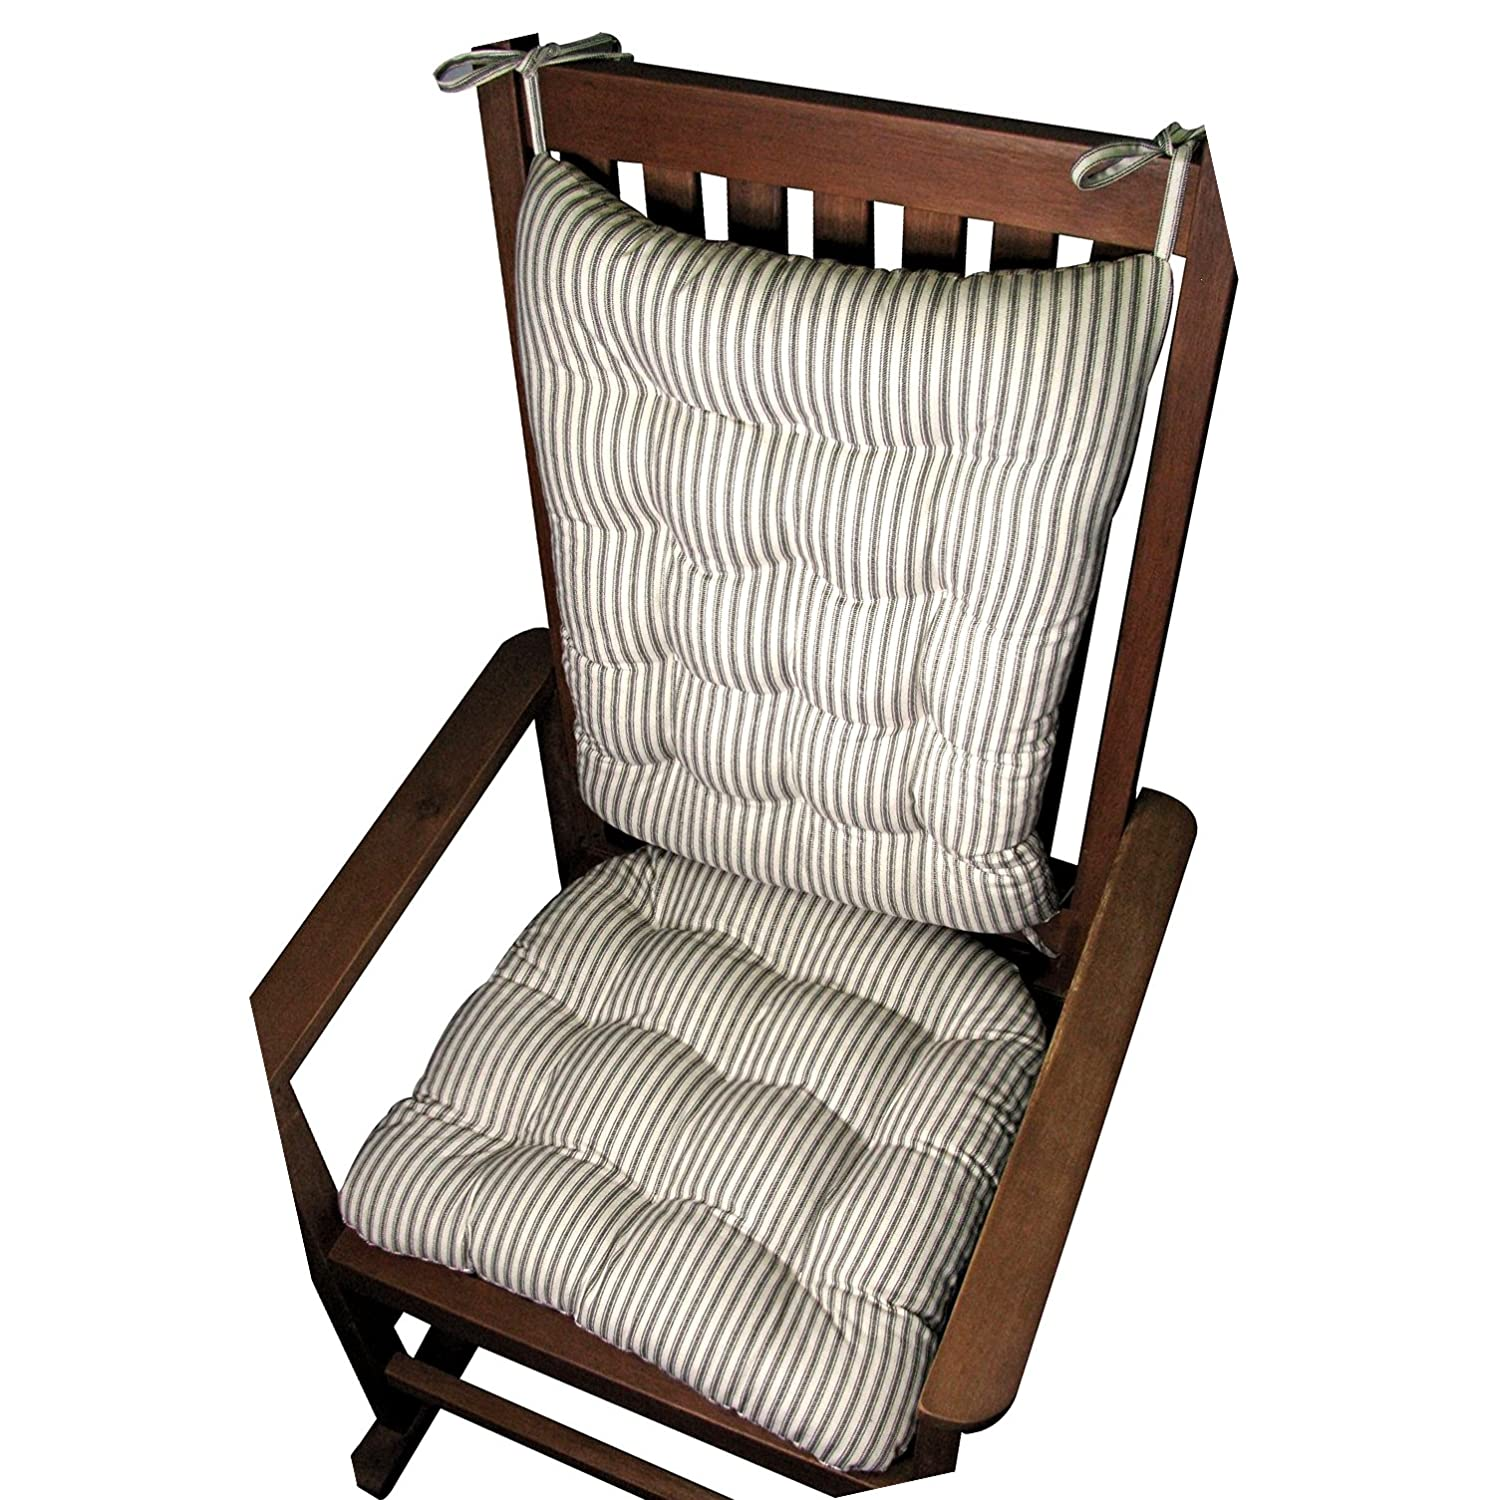 Amazon.com: Rocking Chair Cushion Set - Ticking Stripe Black ...